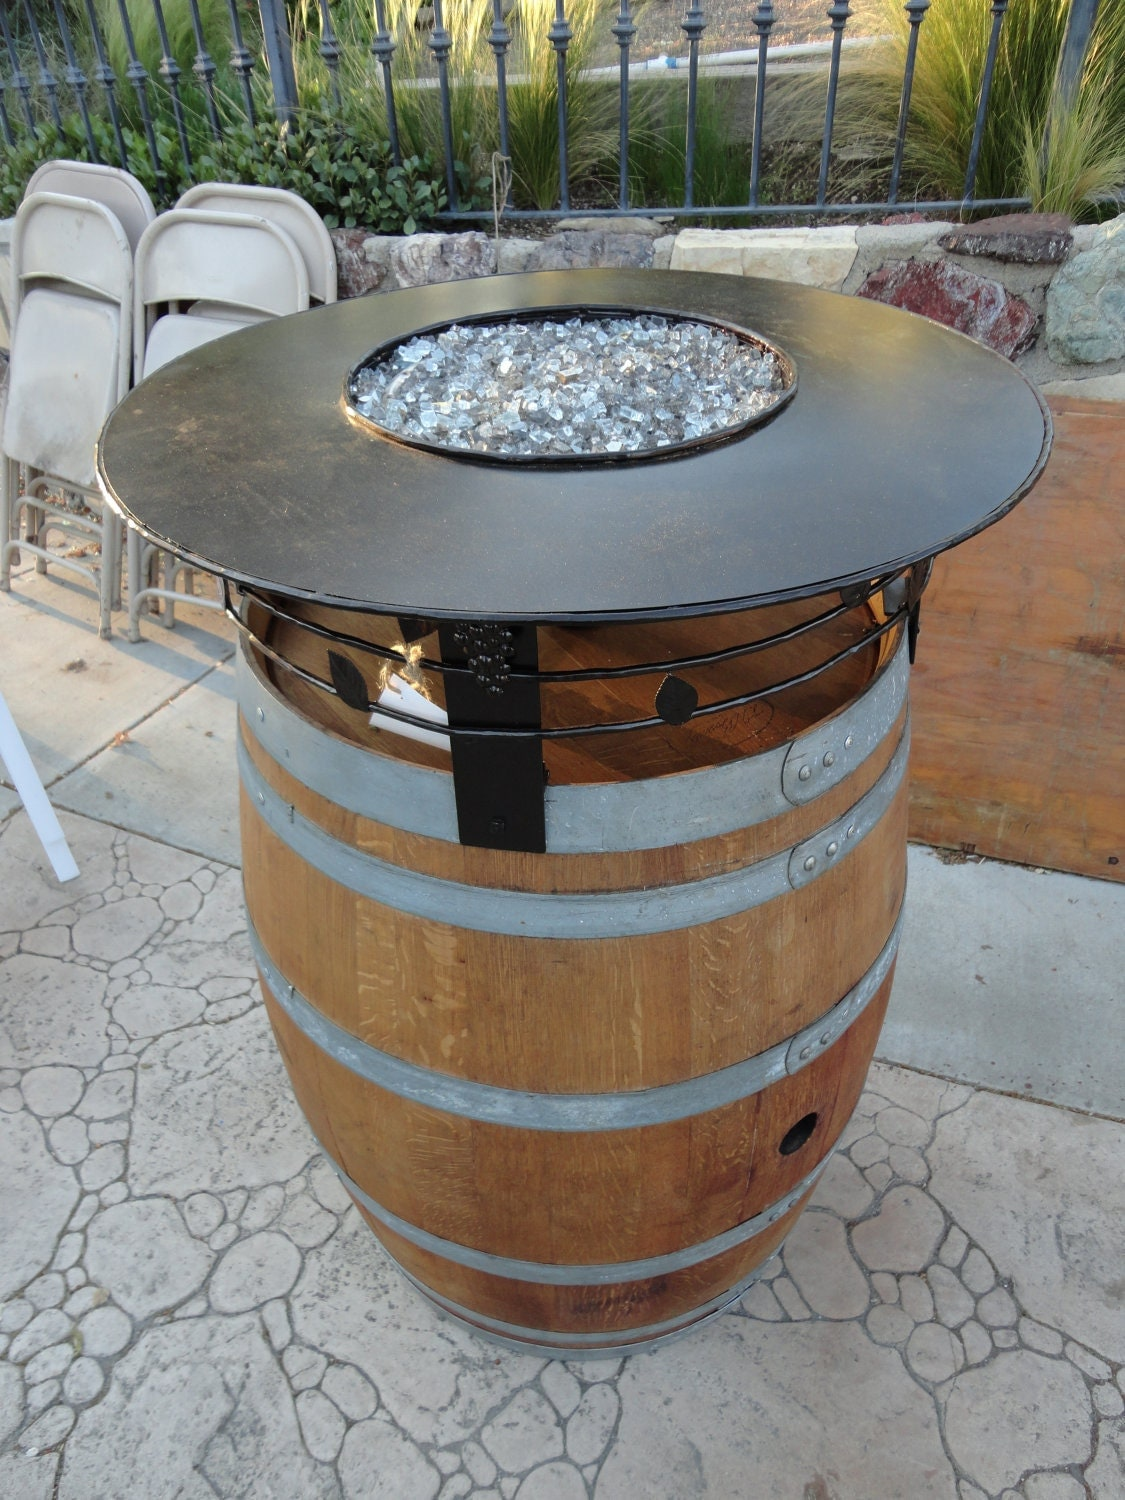 Wine Barrel Fire Pit By Leasureconcepts On Etsy